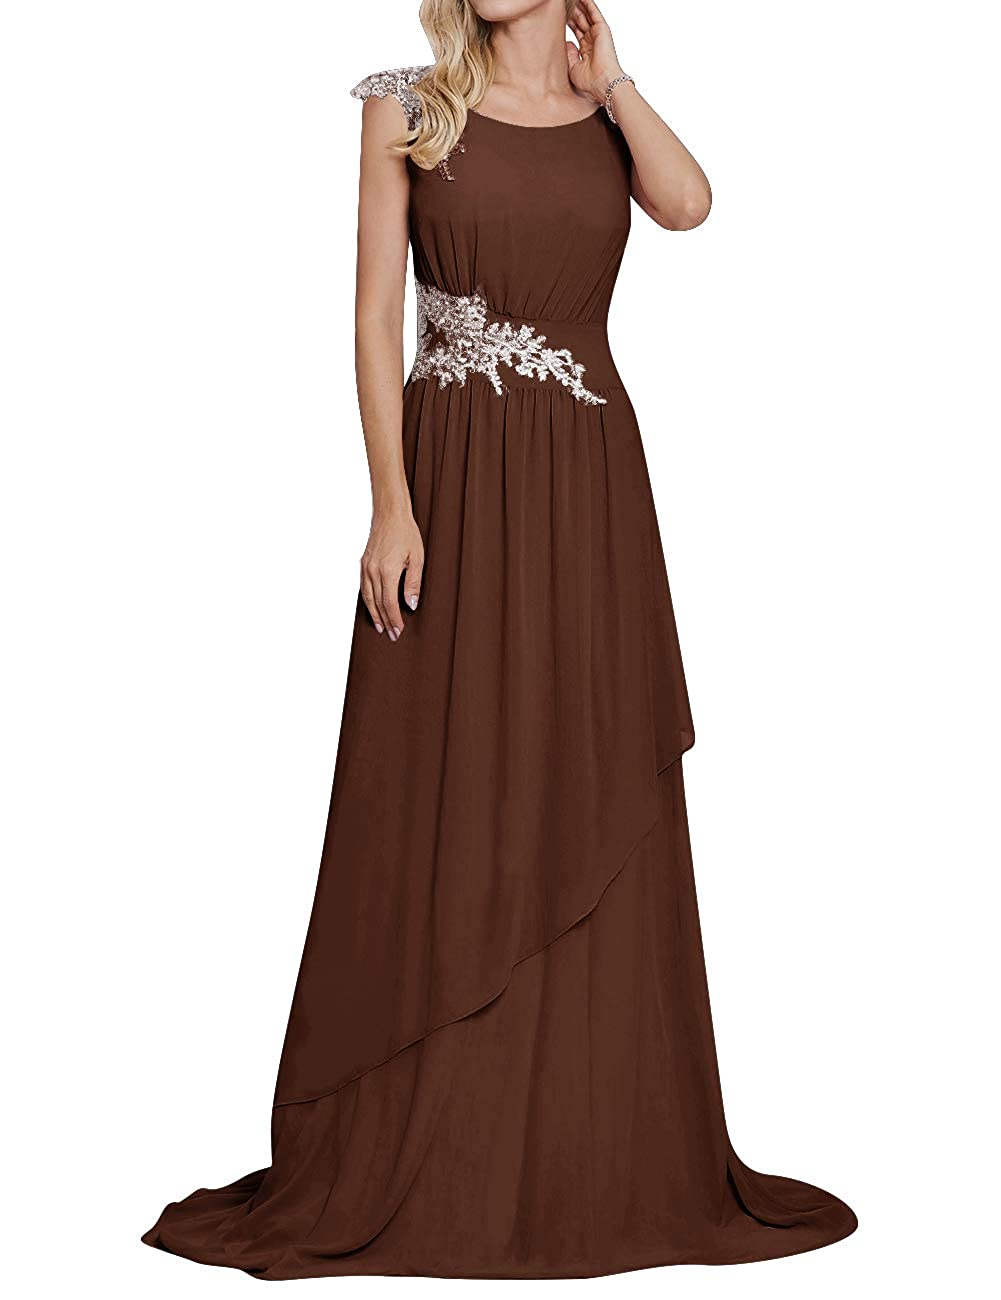 Chocolate Long Evening Party Dress Scoop Mother of The Bride Dresses Lace Appliques